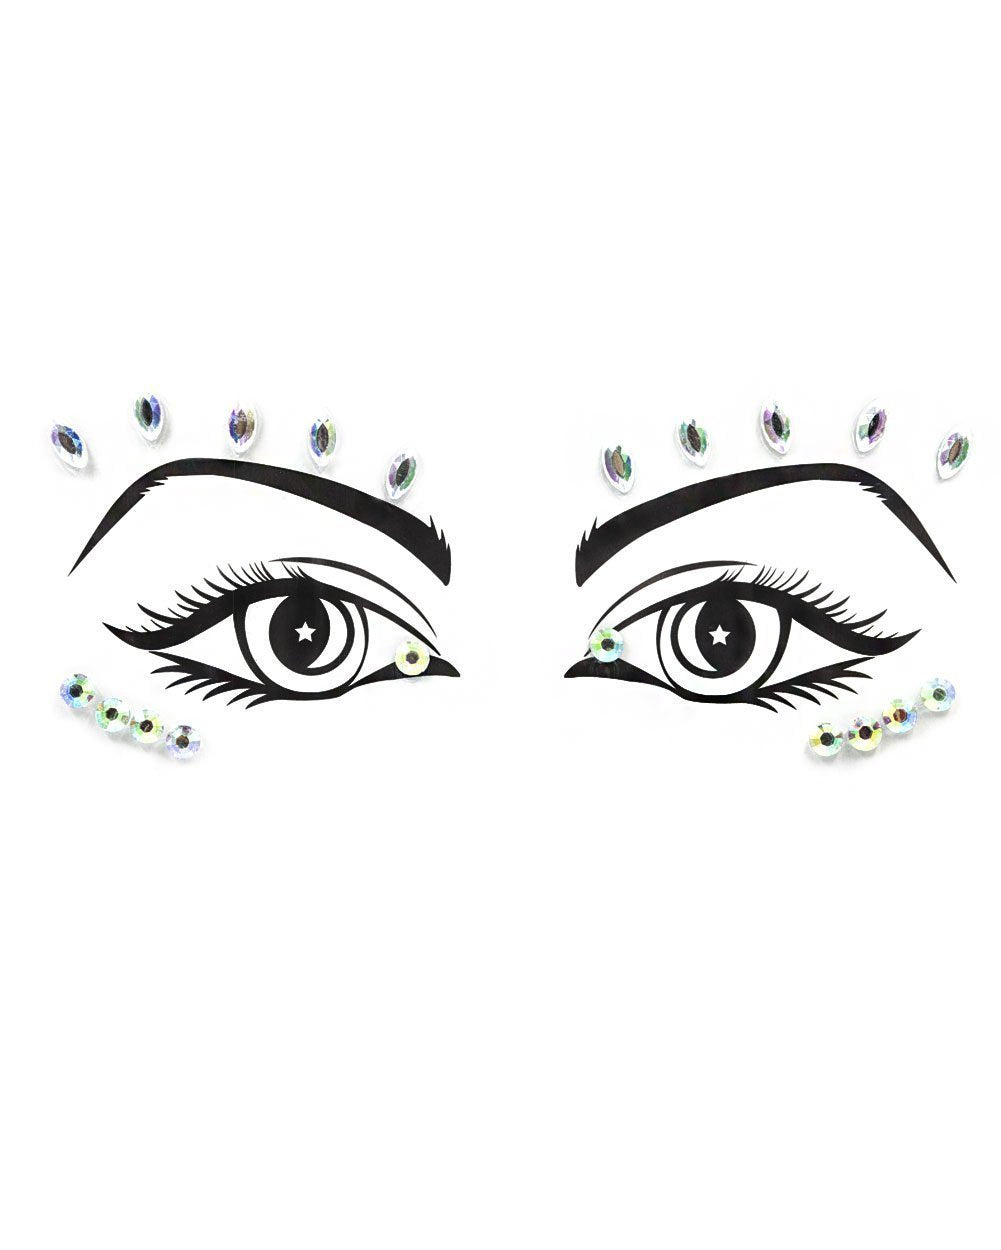 Lunautics Glam Girl Face Jewels